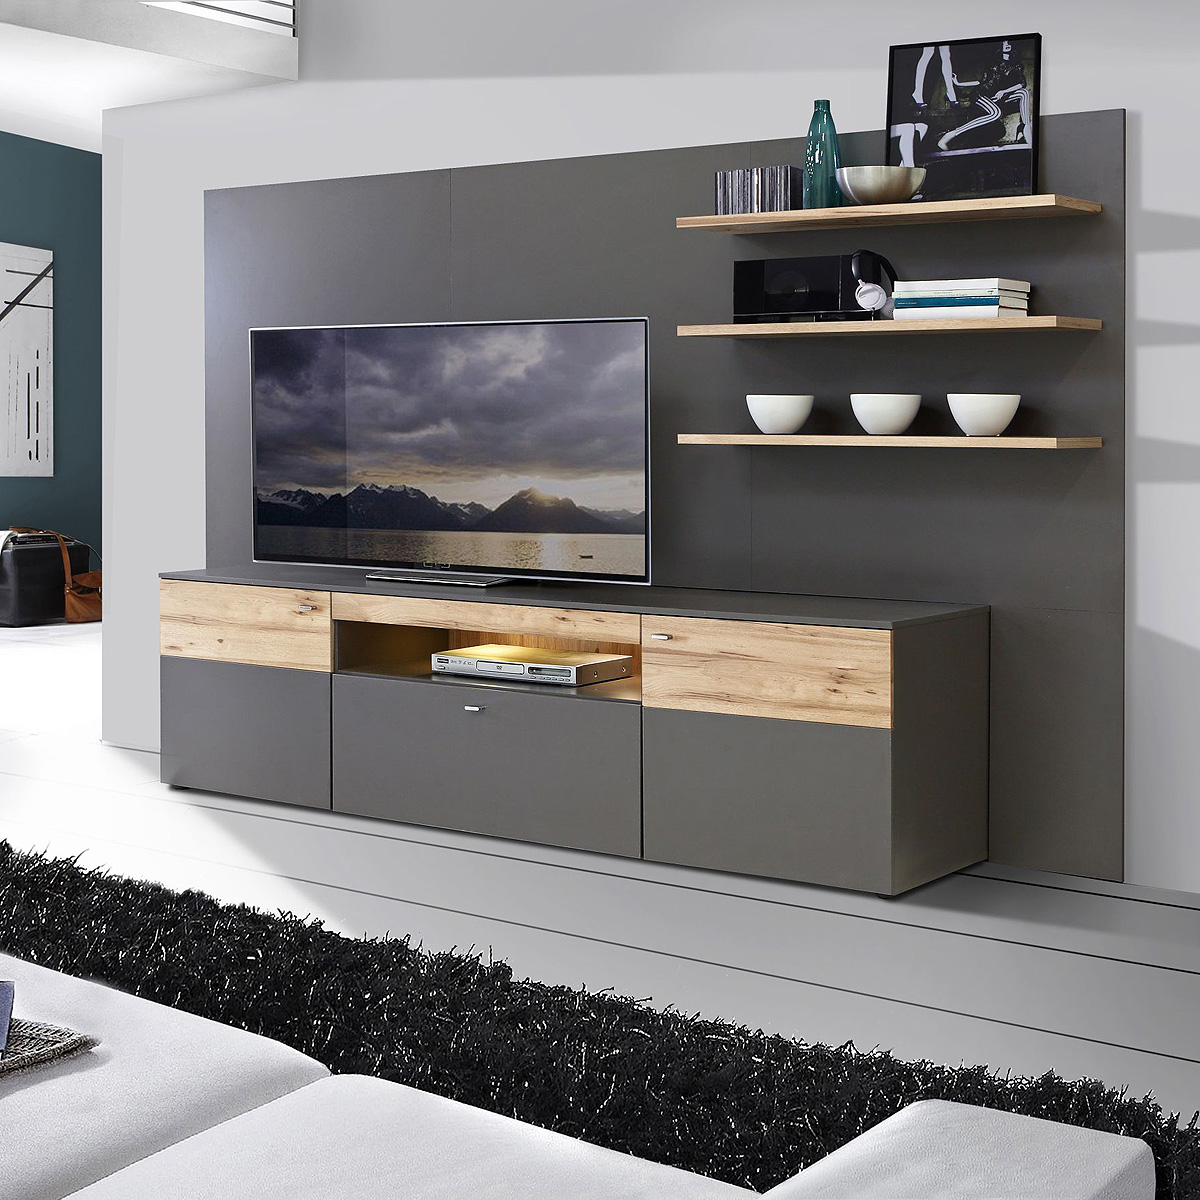 mediacenter como wohnwand wohnzimmer uni wolfram grau und planked eiche mit led ebay. Black Bedroom Furniture Sets. Home Design Ideas